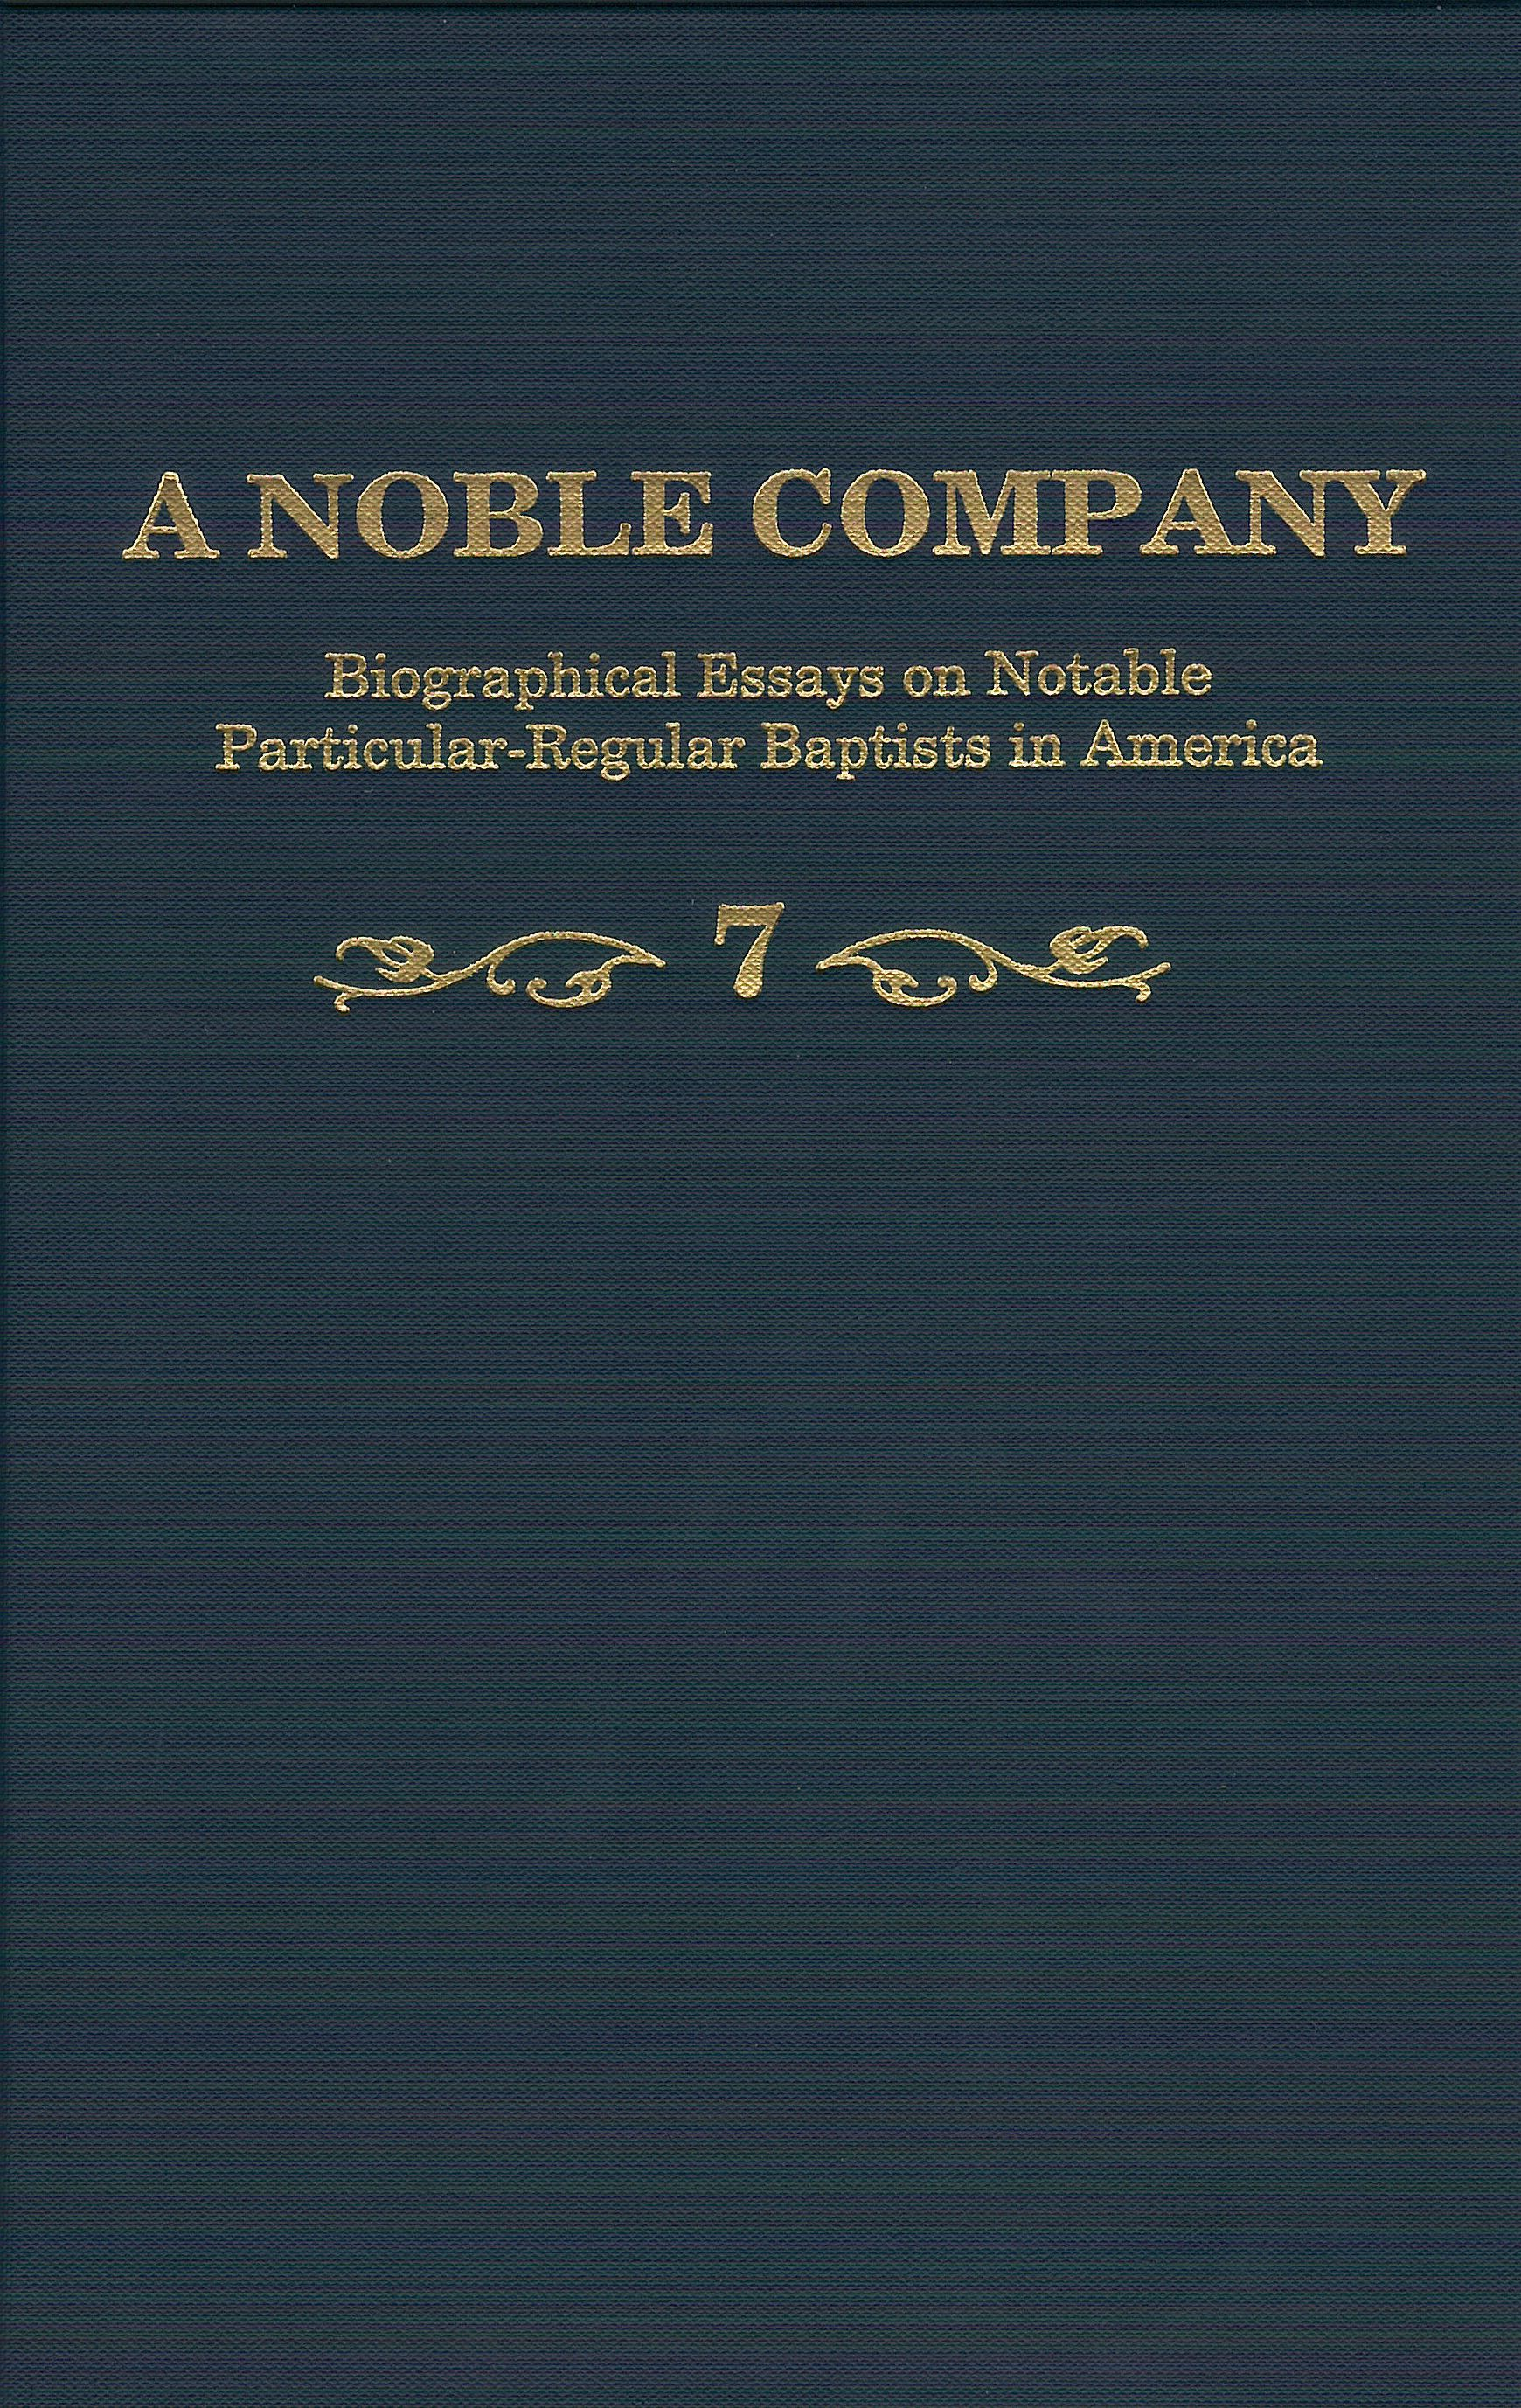 noble-co-v7-book-cover.jpg